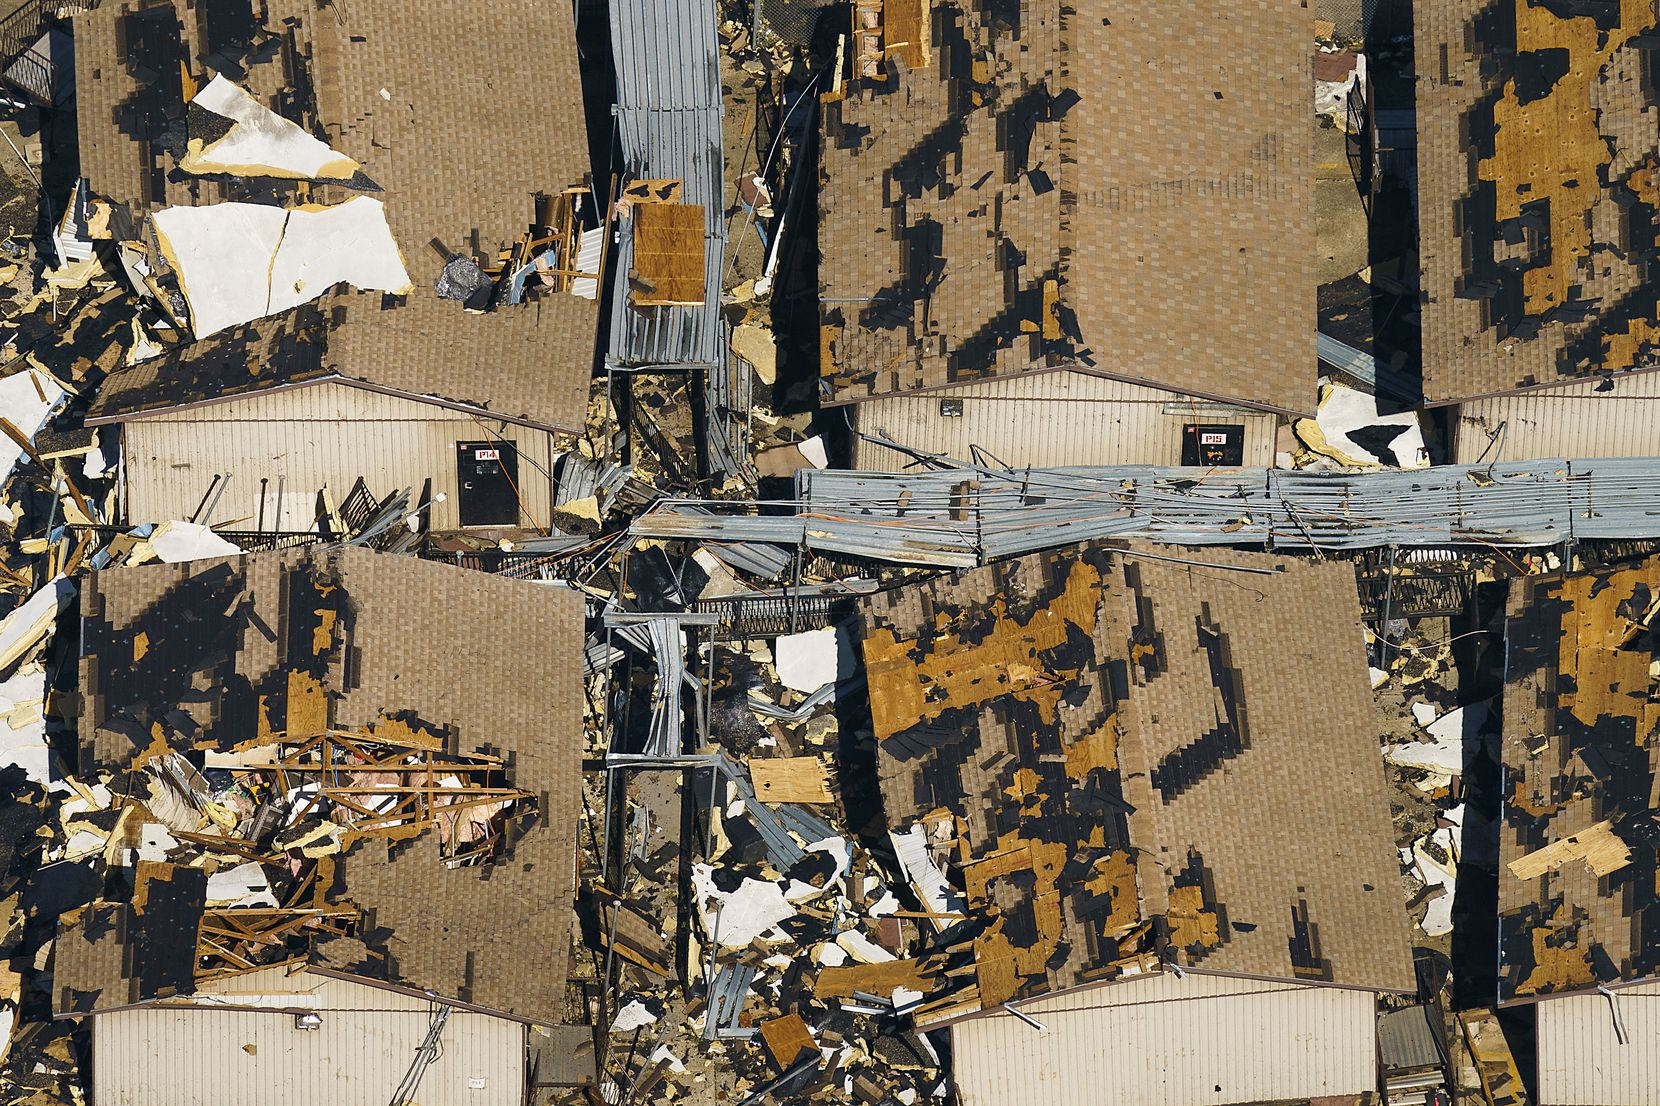 Temporary classroom are seen buried in rubble at Thomas Jefferson High School on Monday, Oct. 21, 2019, in Dallas.